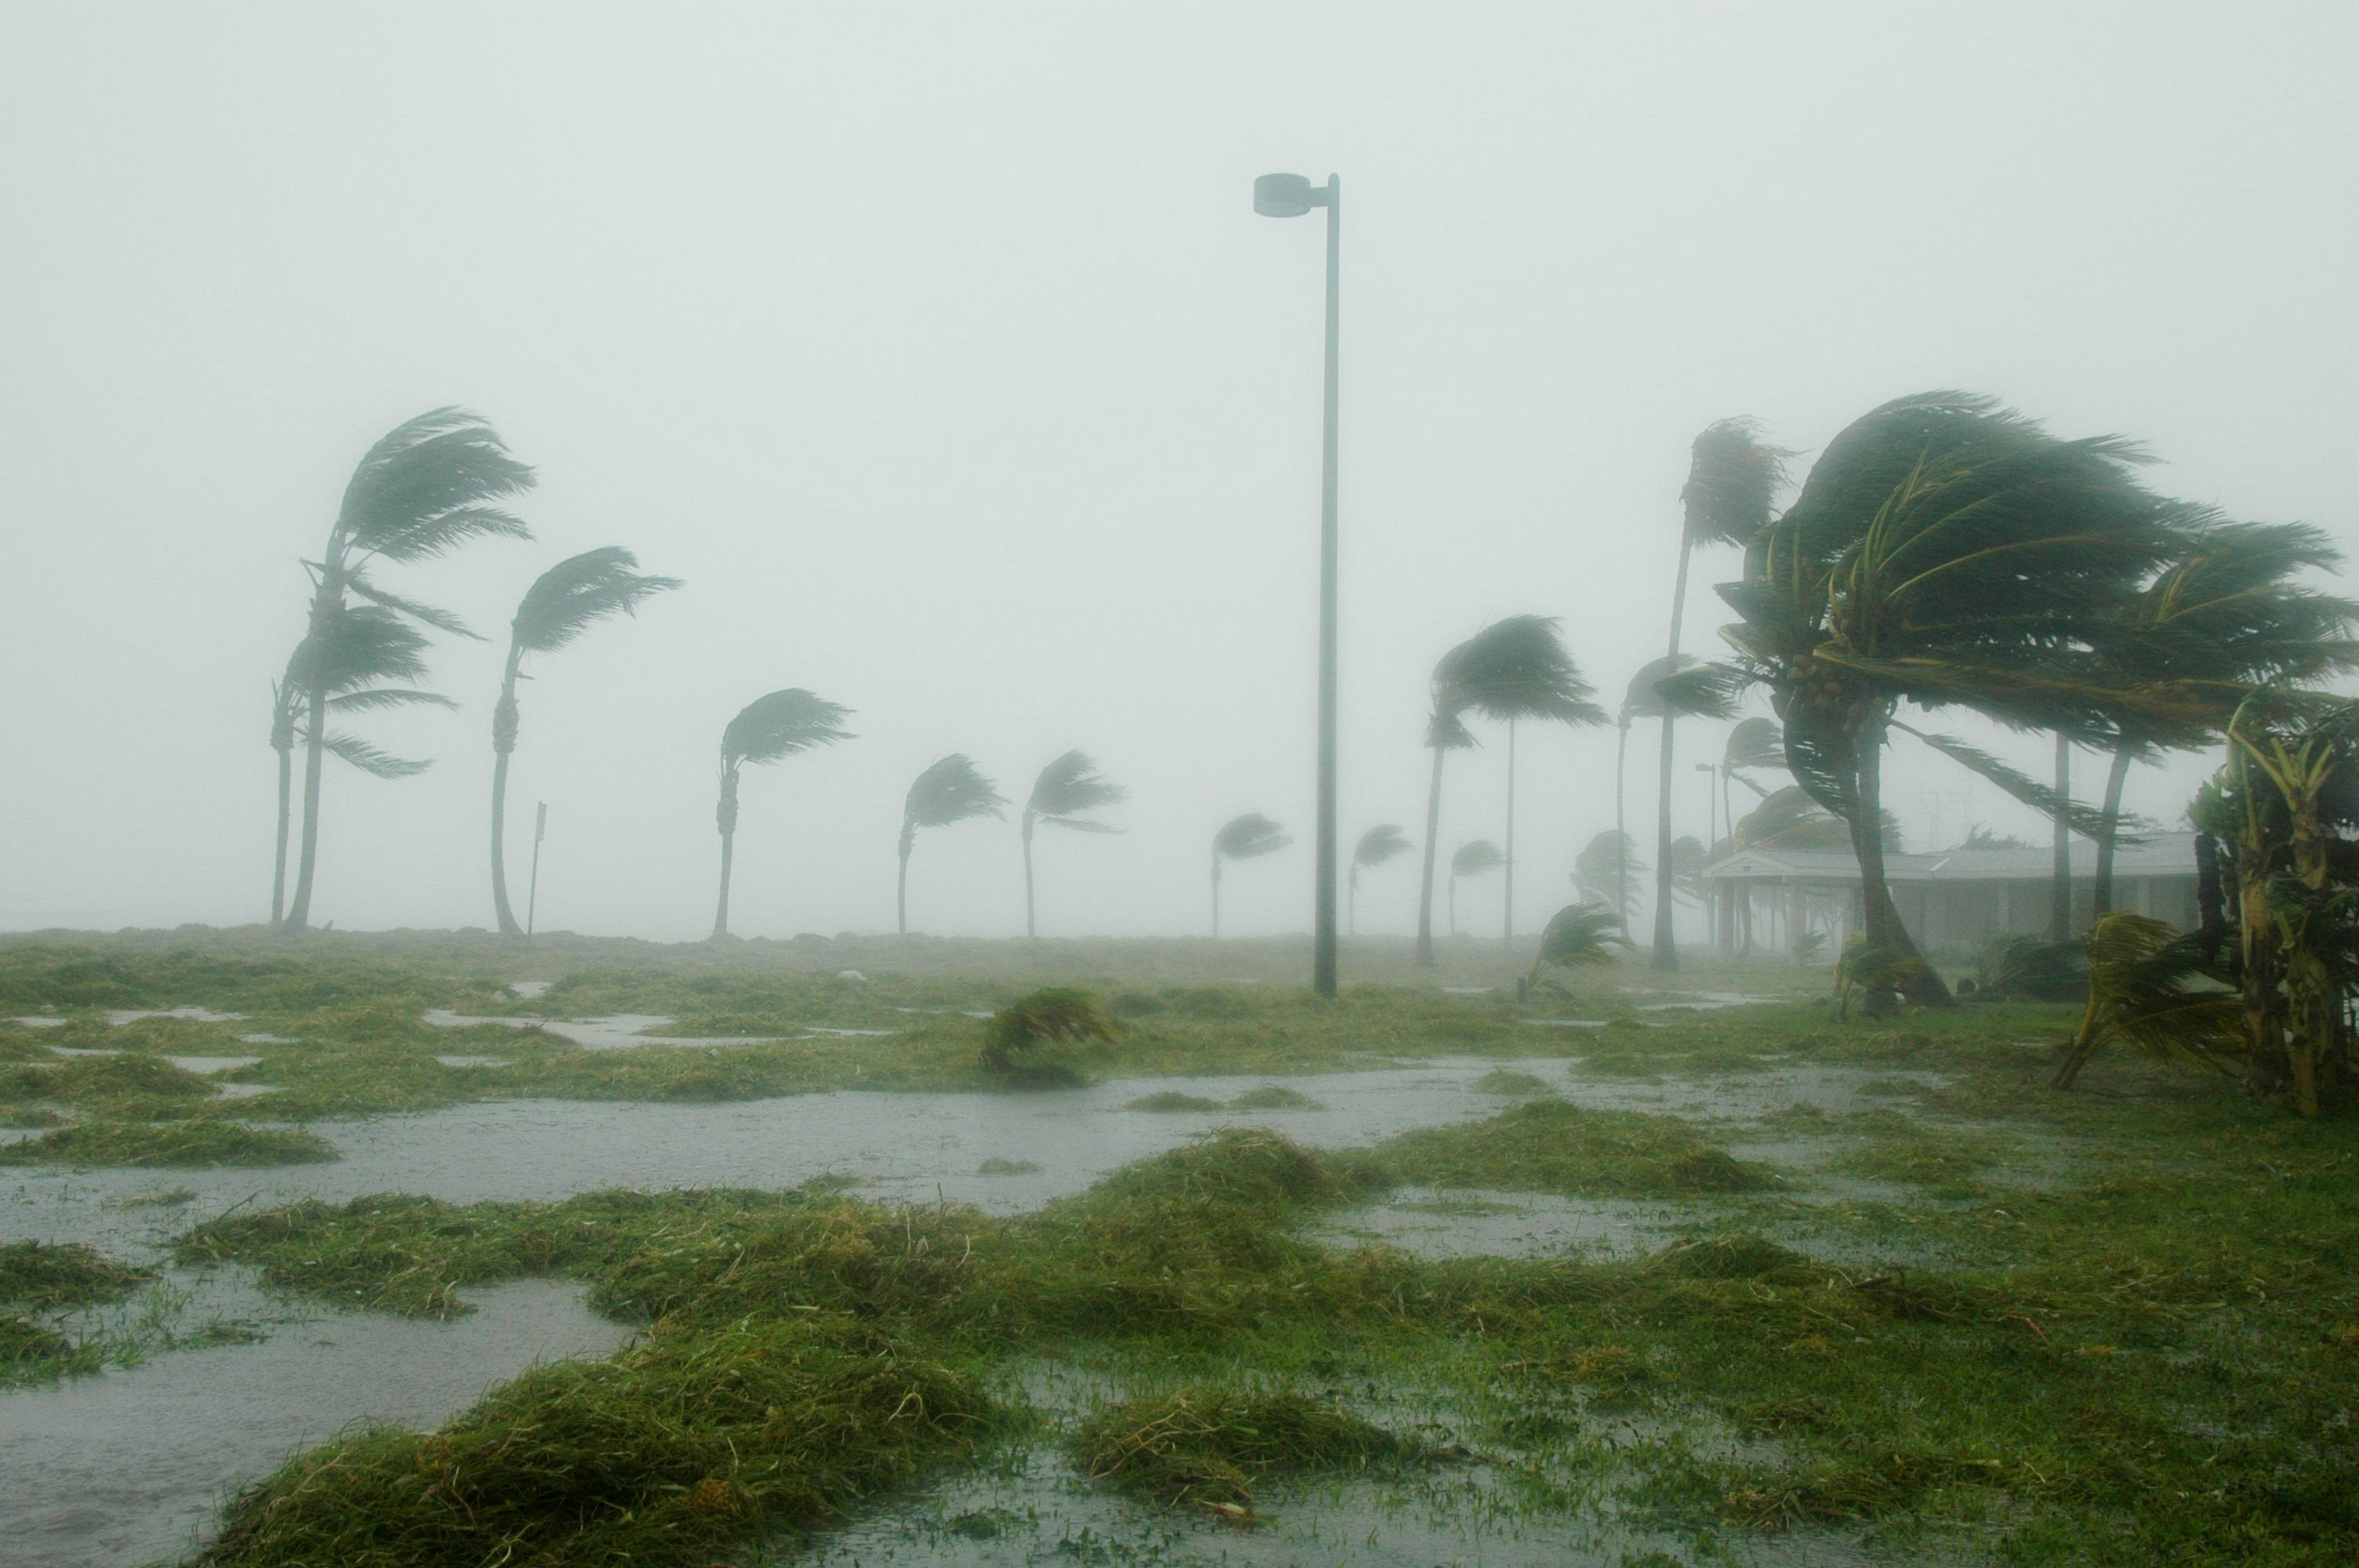 Prepare for an oncoming hurricane with this article